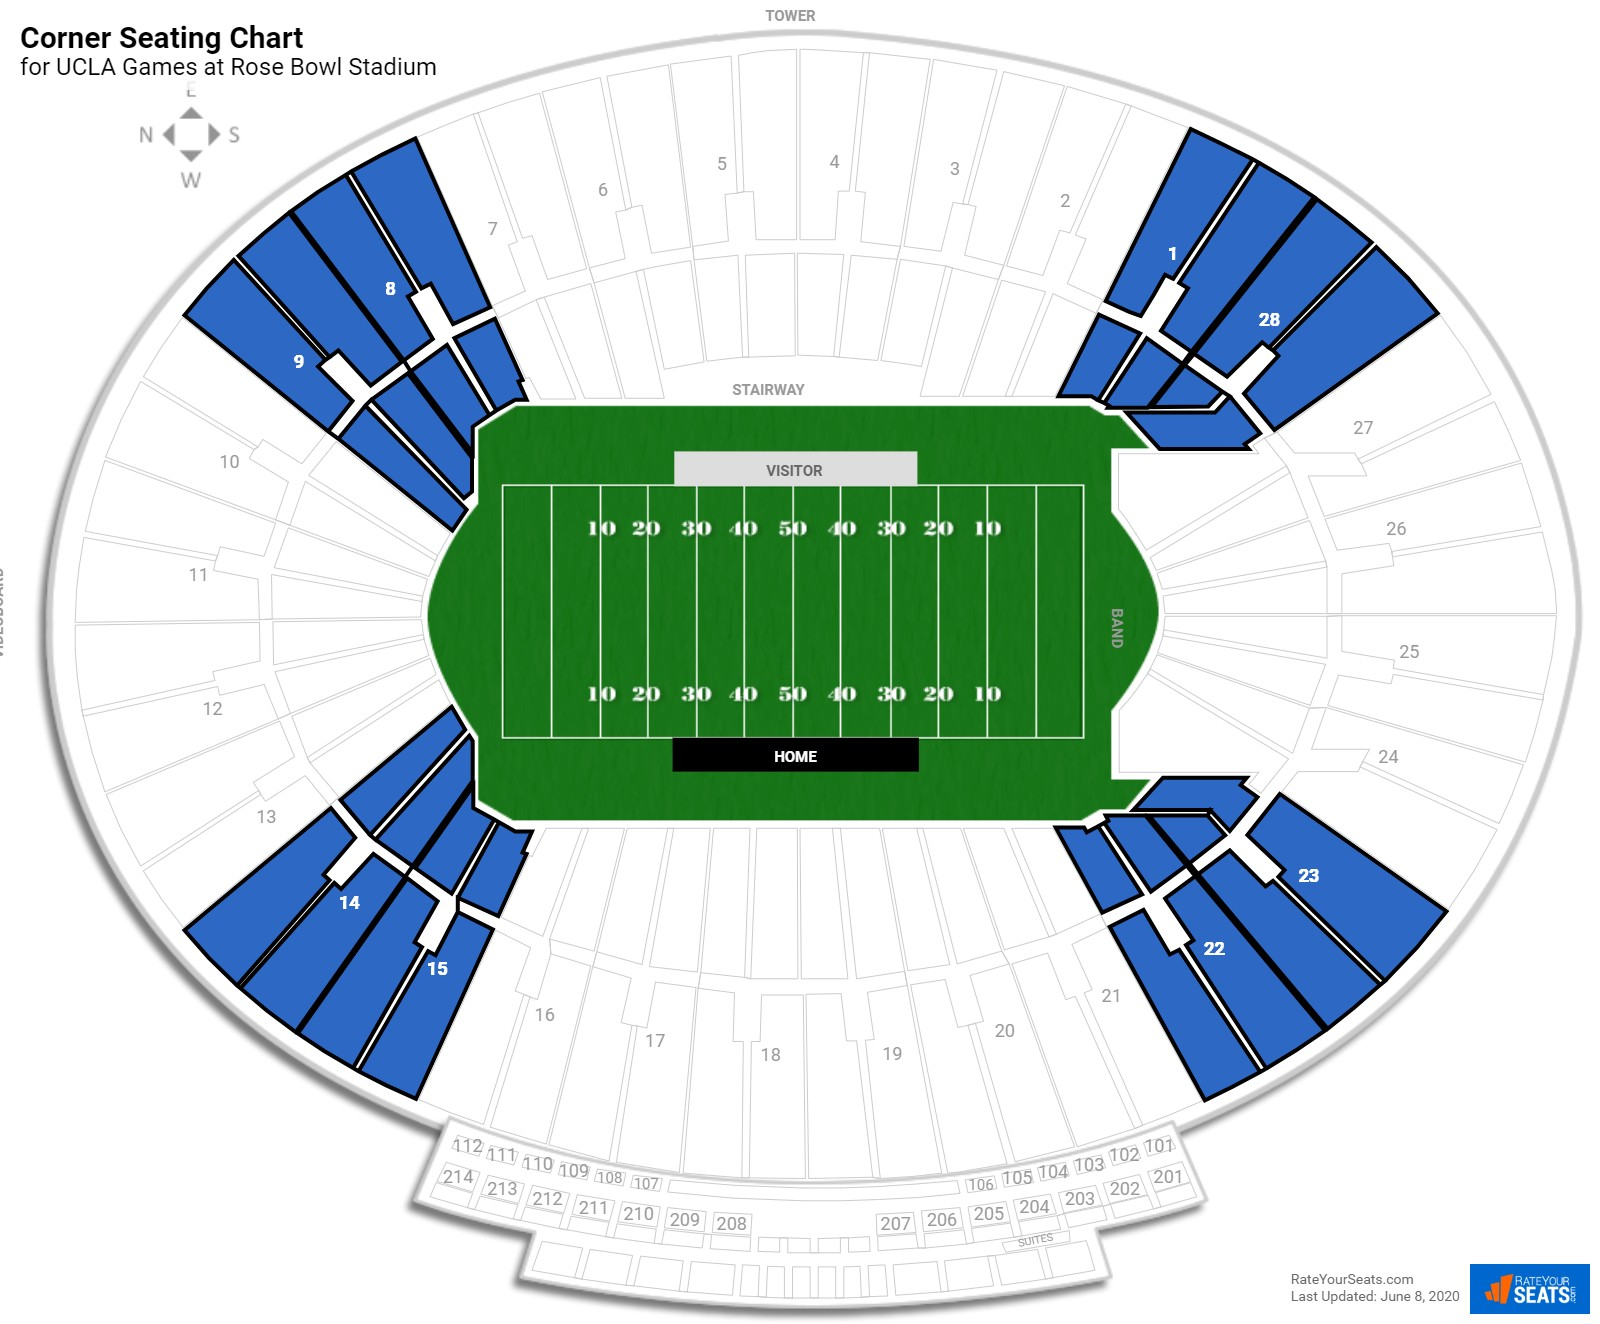 Rose Bowl Stadium Corner seating chart